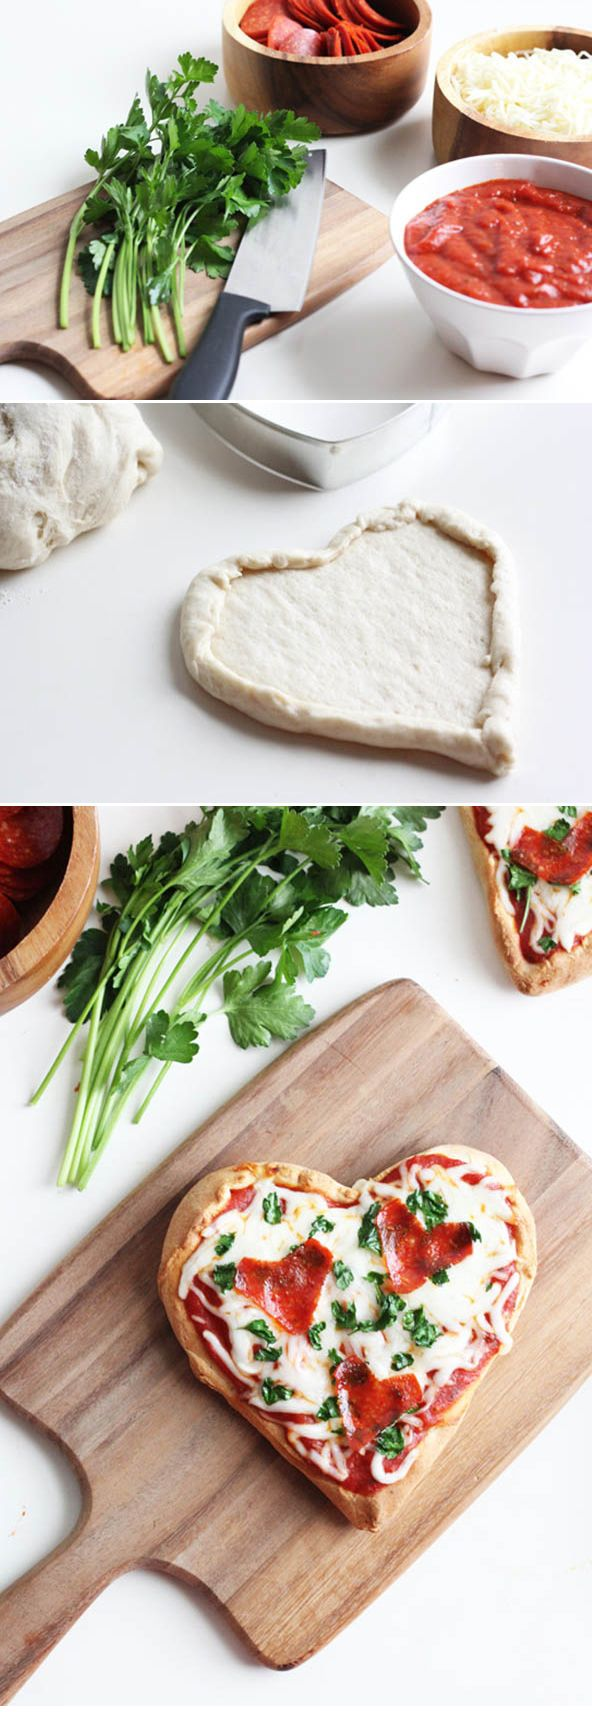 Homemade Heart Pizza | Valentine's Day Dinner Ideas